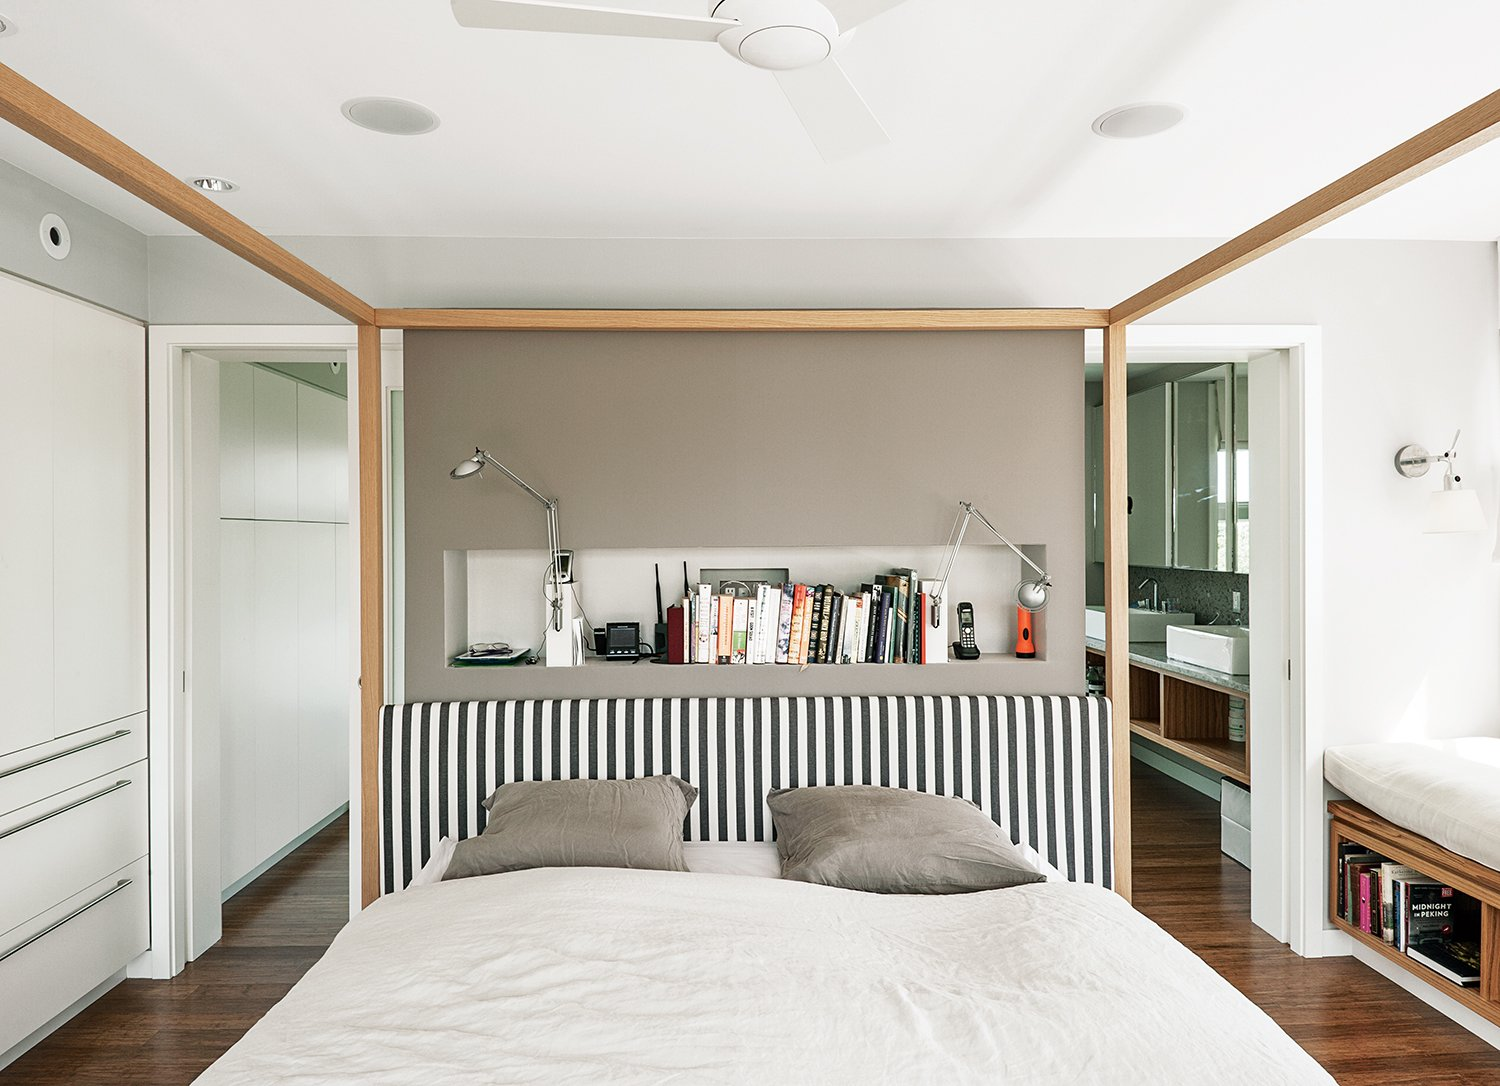 Bedroom, Bed, and Medium Hardwood Floor An Alcova bed from B&B Italia dominates the master bedroom. A niche behind the bed holds Berenice wall lamps by Luceplan, and the walls are painted in Cornforth White and Charleston Gray from Farrow & Ball.  Photo 8 of 11 in An Unconventional Prefab on Fishers Island